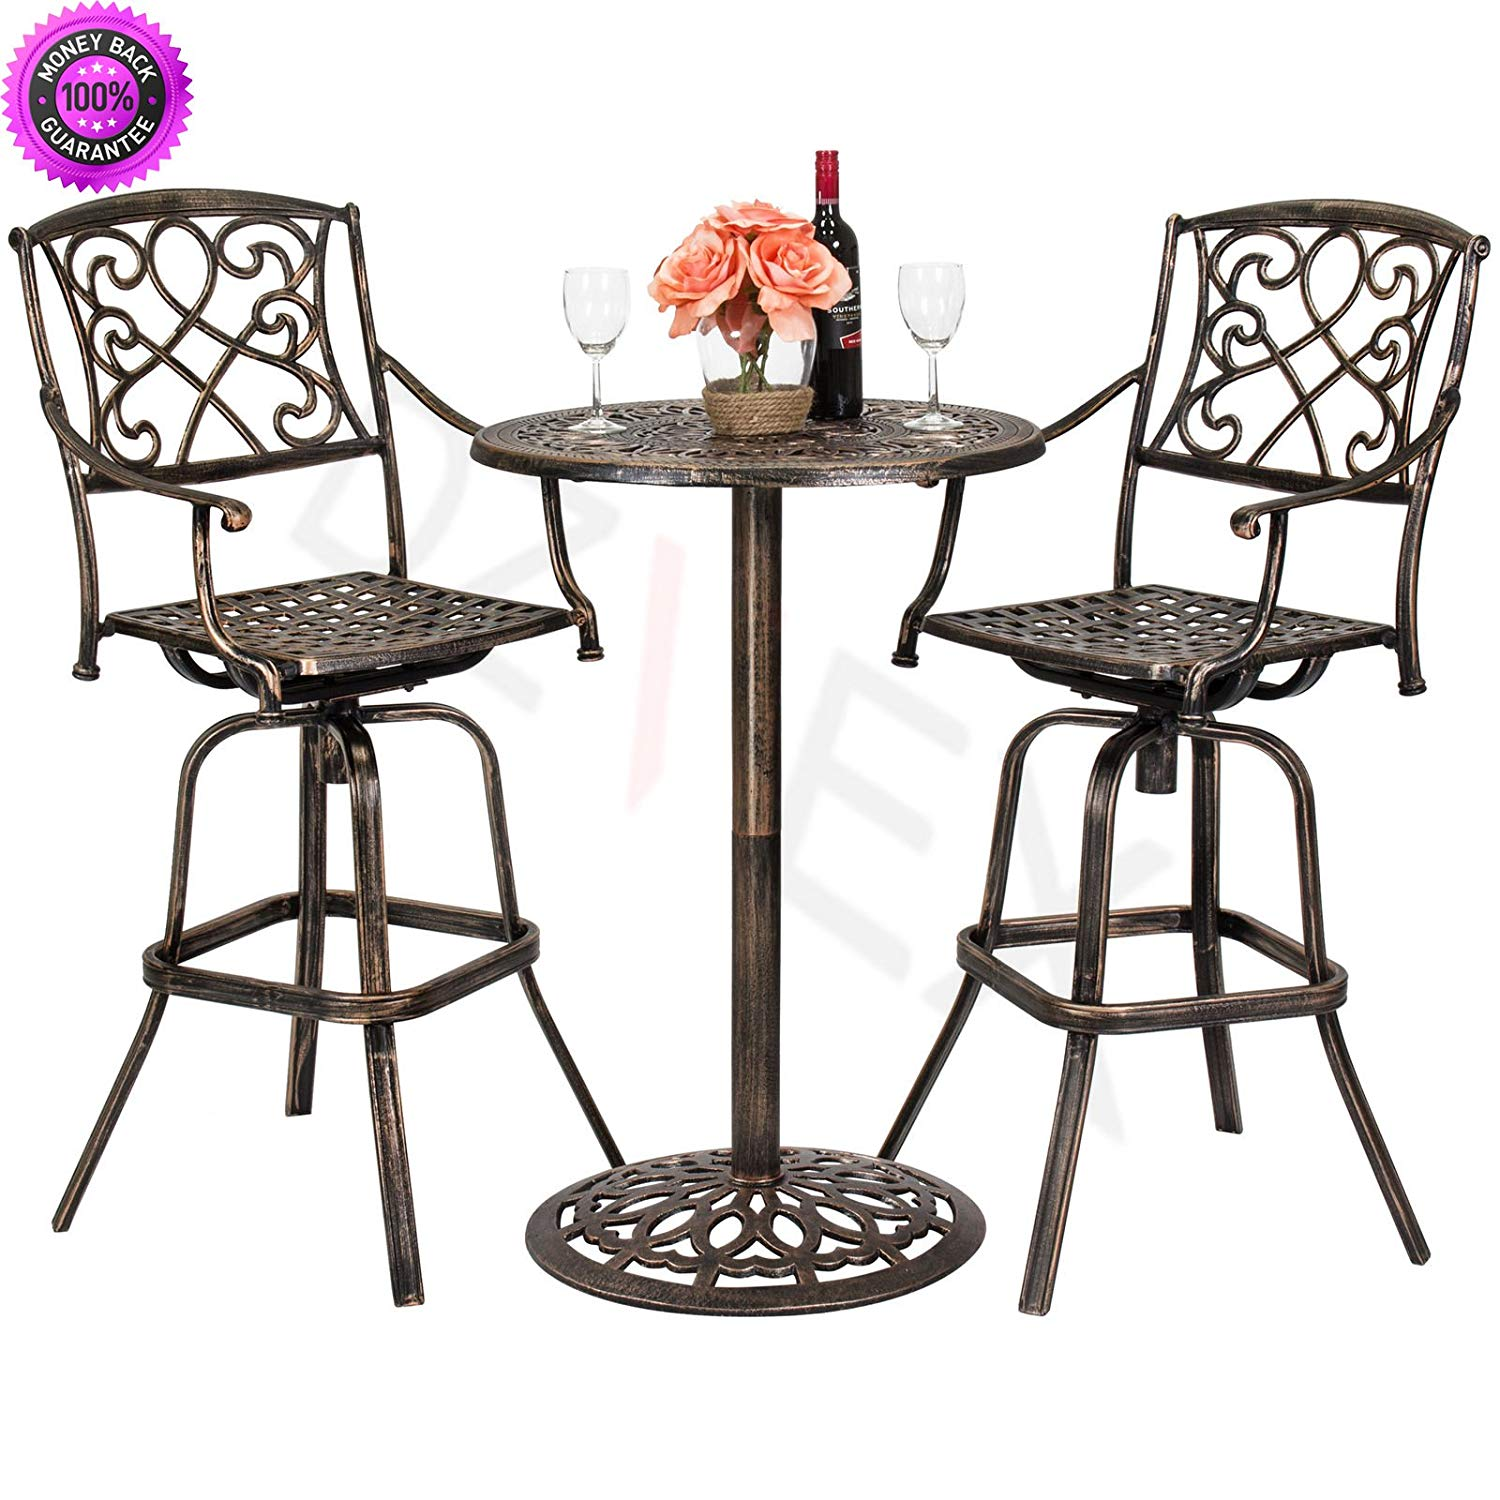 patio table and chairs clearance small dining room cheap outdoor sets sale find deals on get quotations dzvex 3 piece cast aluminum bistro set